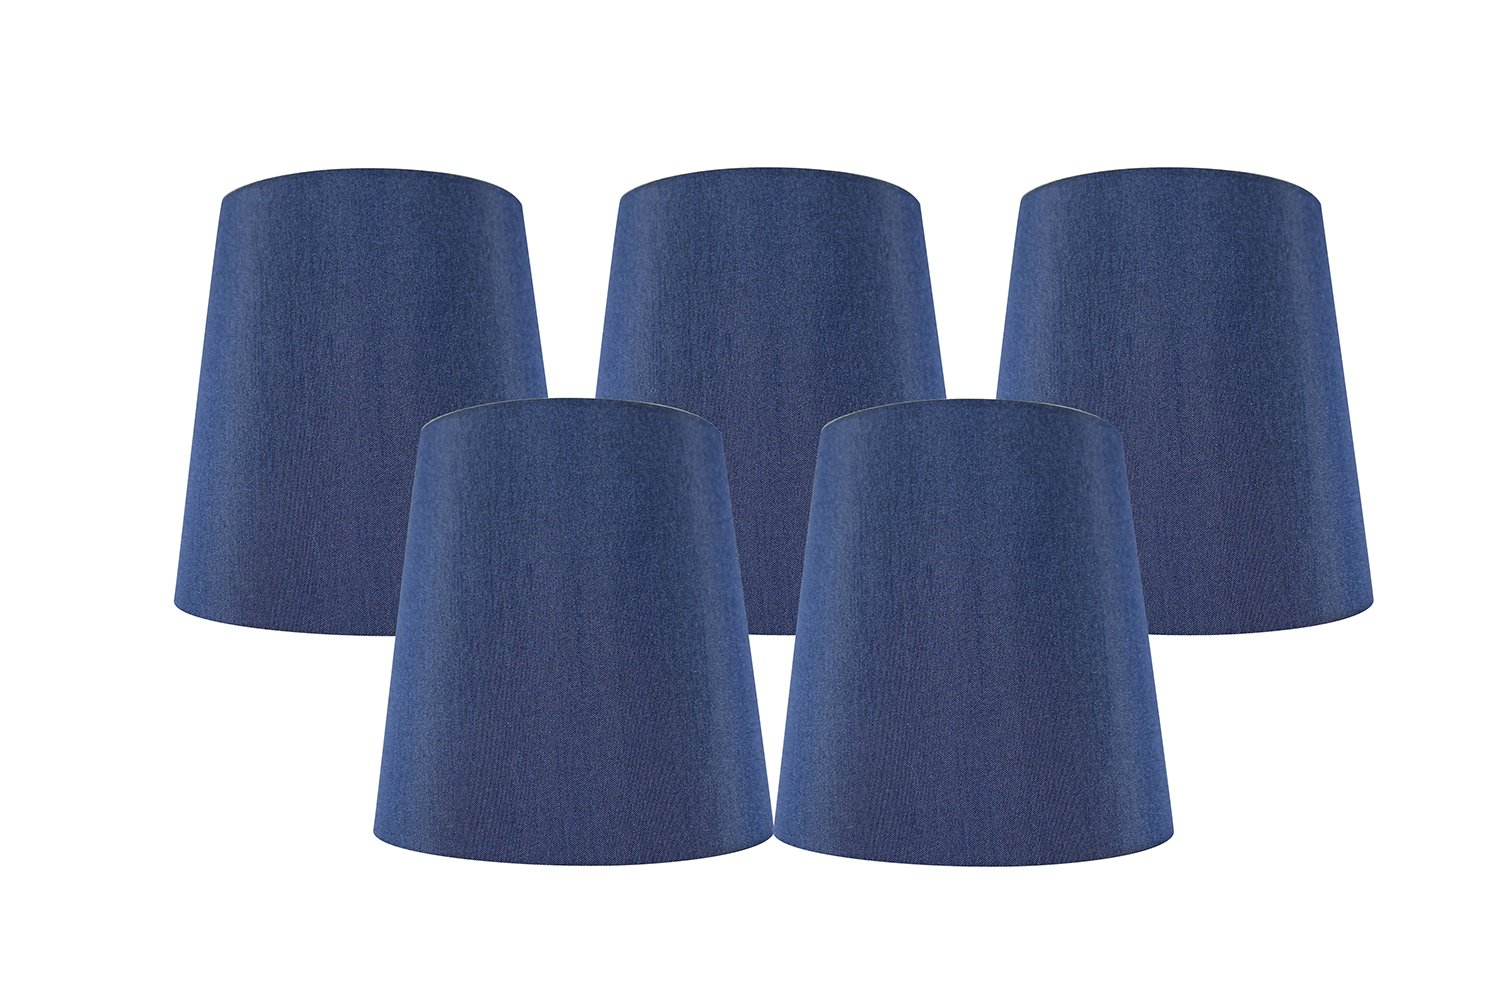 Meriville Set of 5 Blue Faux Silk Clip On Chandelier Lamp Shades, 4-inch by 5-inch by 5-inch